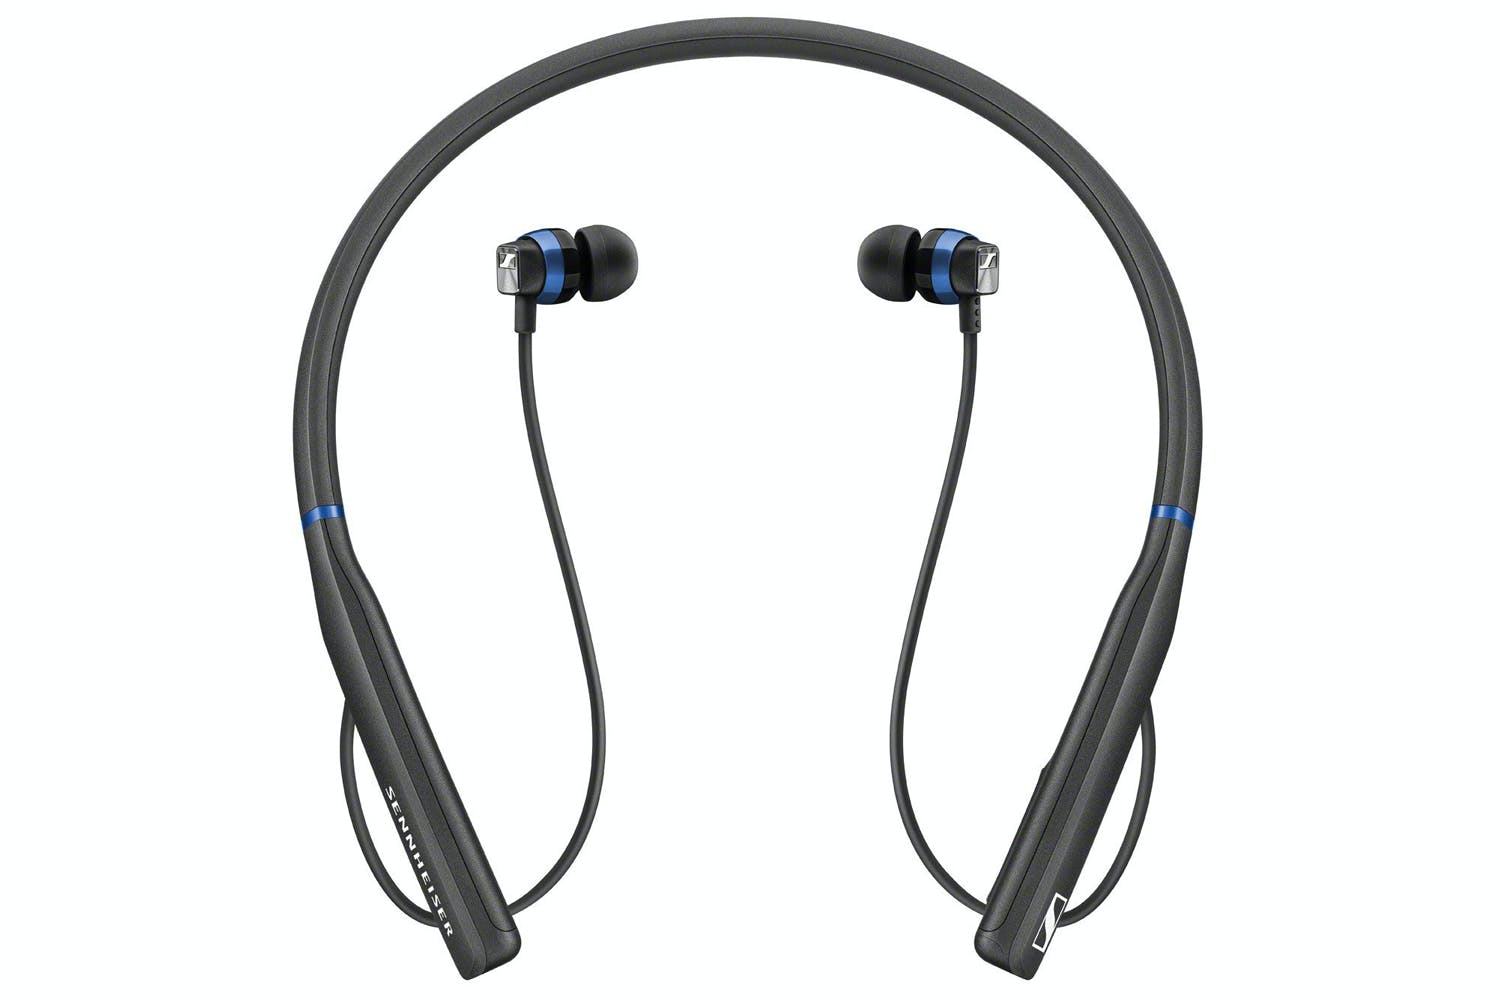 eb231a5a2bc Sennheiser CX 7.00BT In Ear Wireless Headphones | Black | Ireland